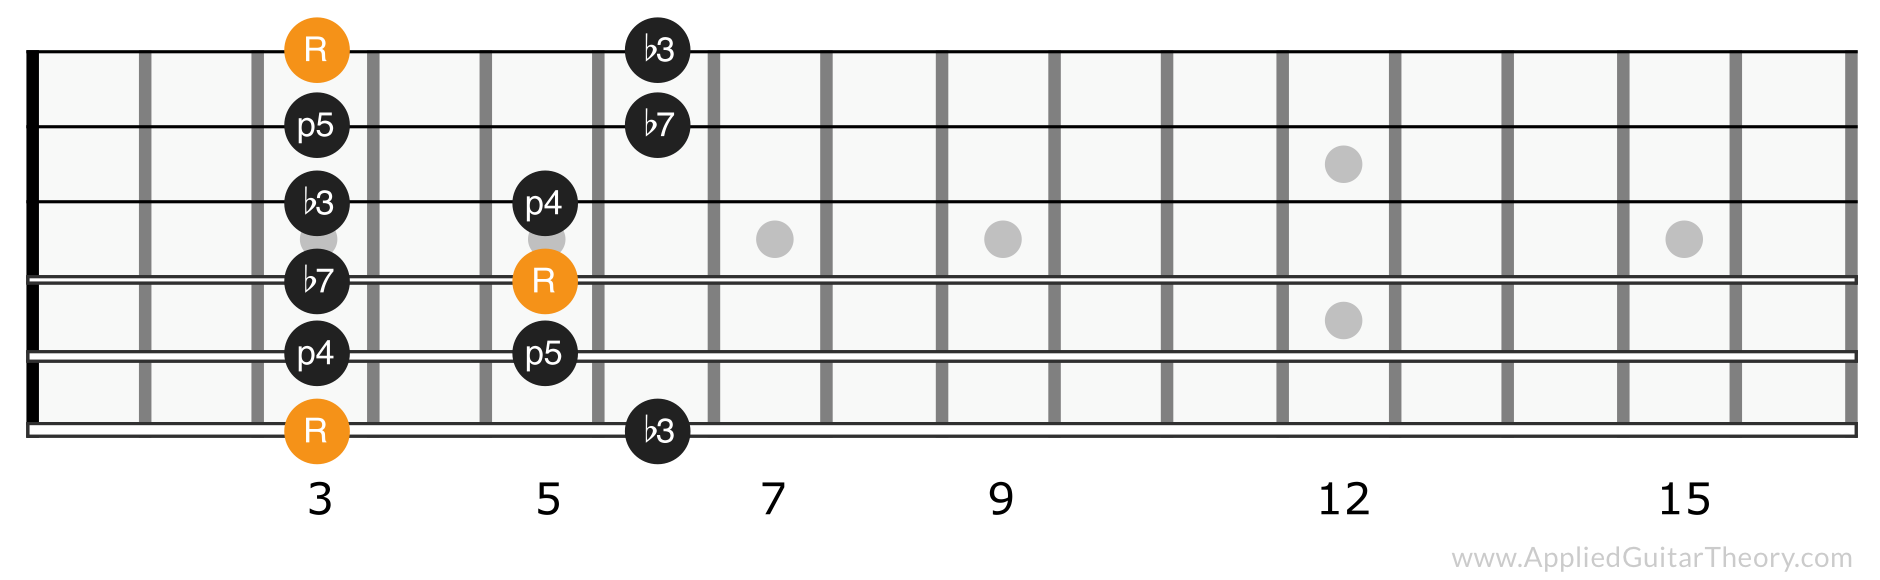 Minor pentatonic scale position 1